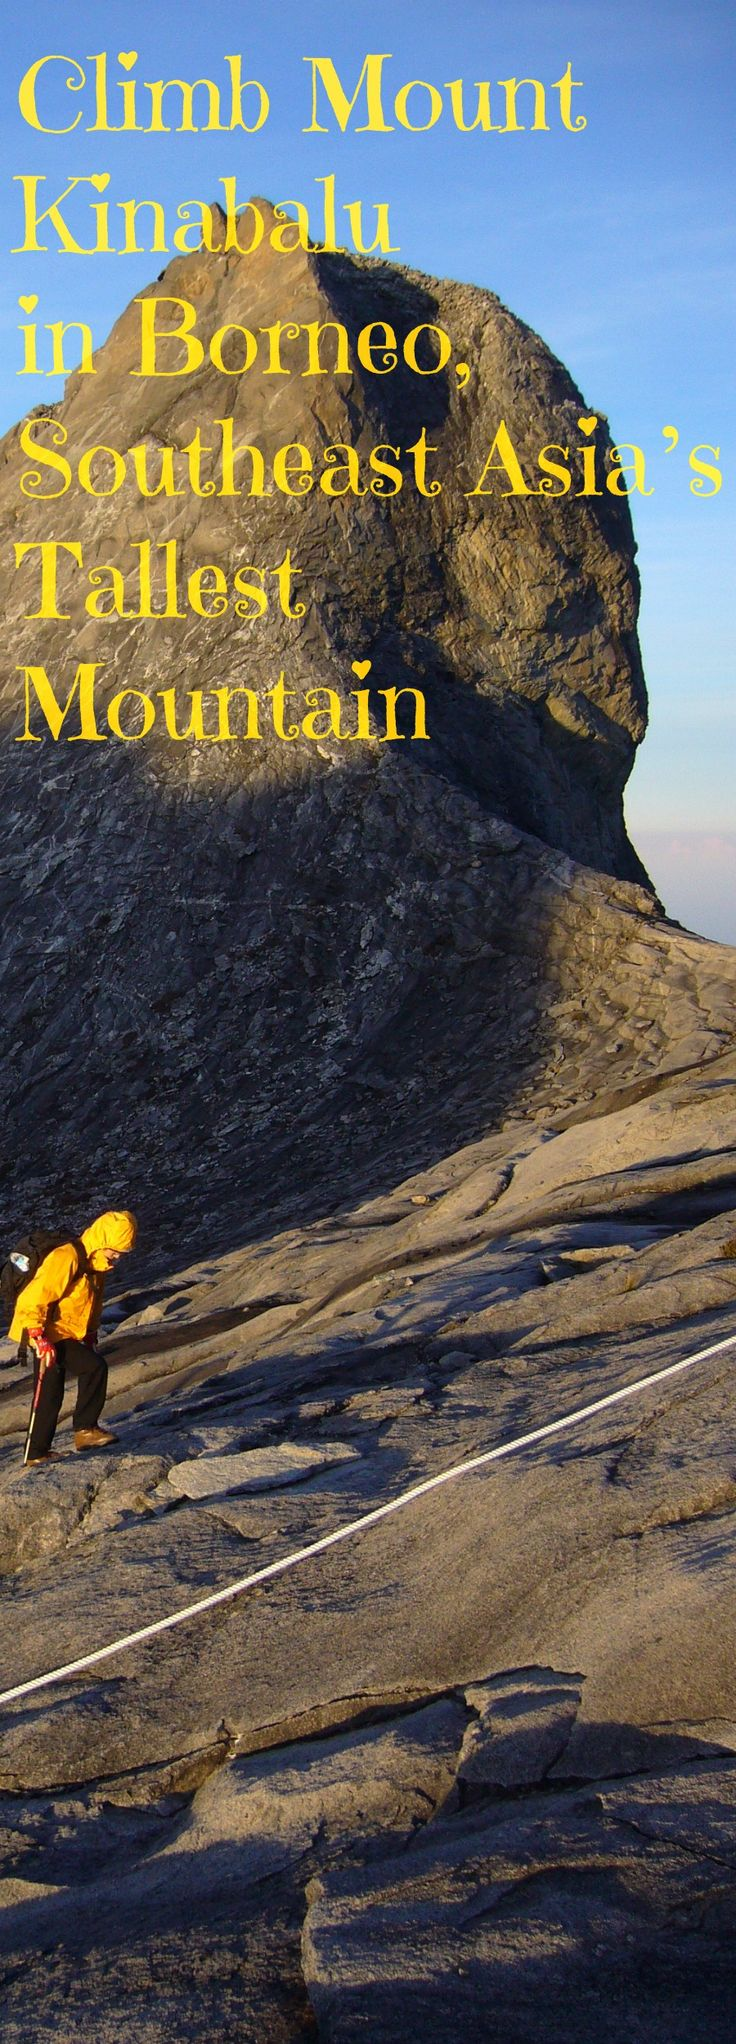 Climb Mount Kinabalu in Borneo, Southeast Asia's Tallest Mountain    Mt. Kinabalu is known to be one of the most accessible mountains in the world.